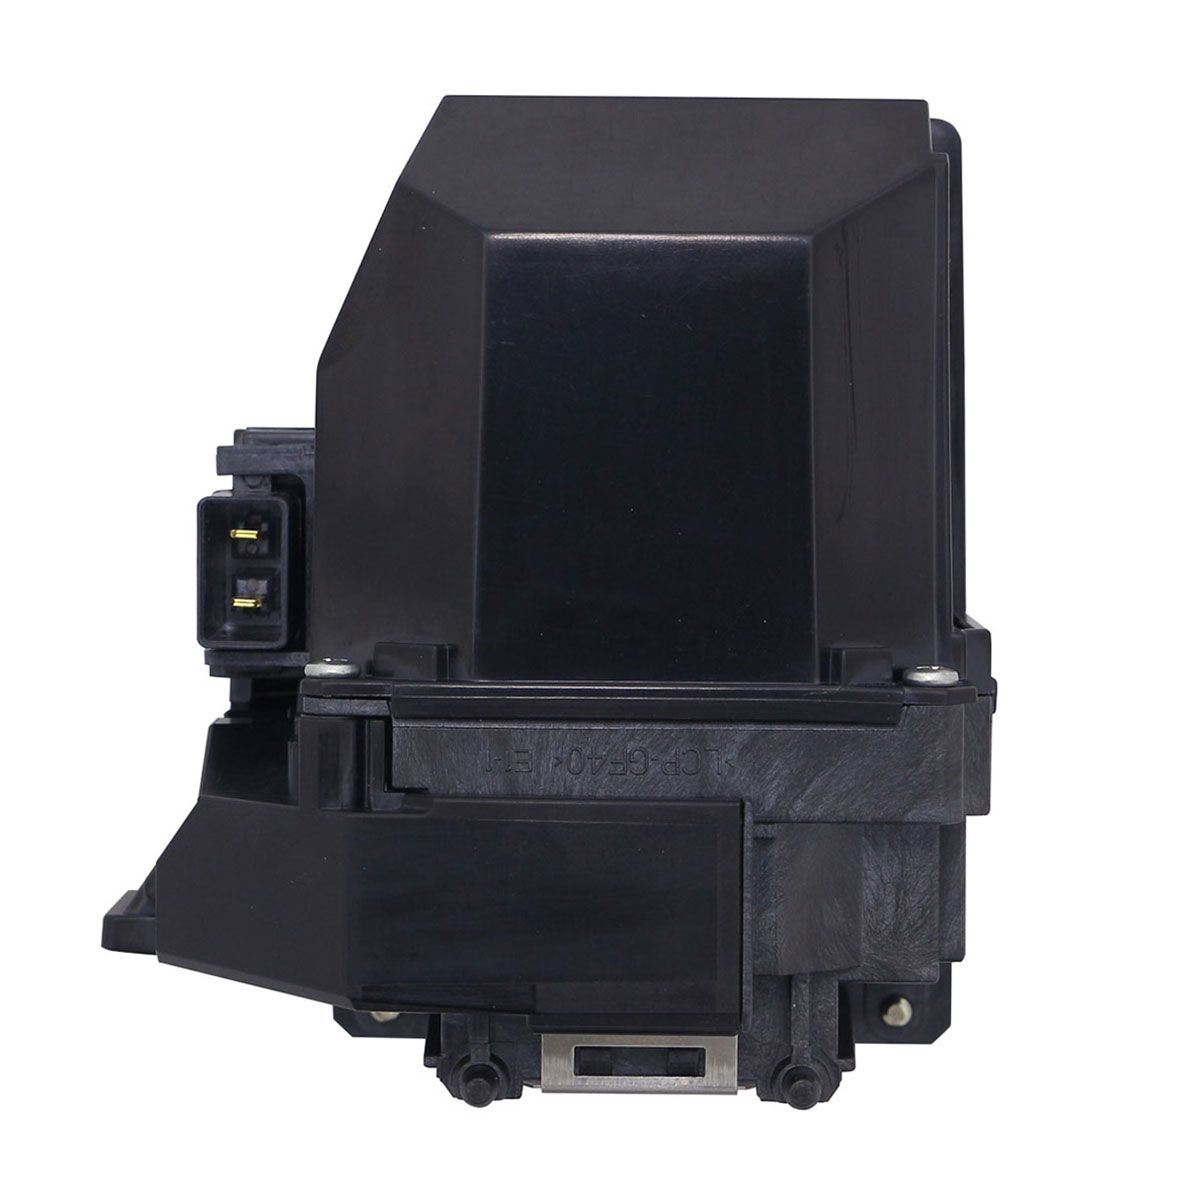 Lutema Platinum for Epson EB-S41 Projector Lamp with Housing (Original Philips Bulb Inside) - image 2 of 5